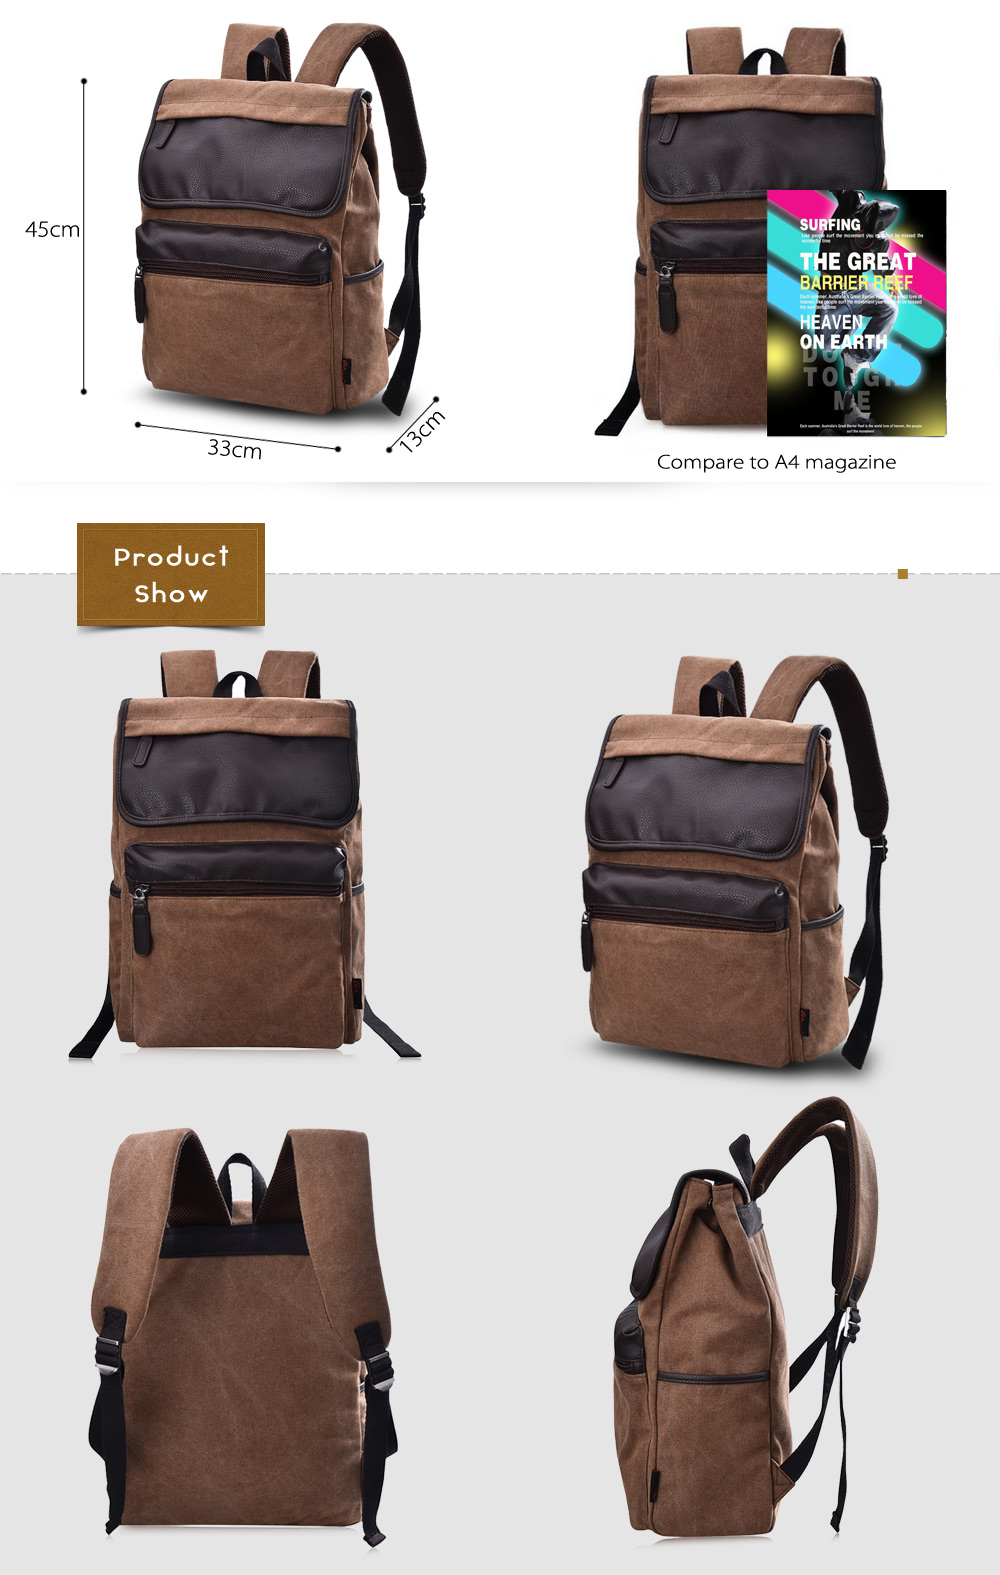 Douguyan 15.6 inch PU Canvas Splicing Backpack Leisure Travel Laptop Bag